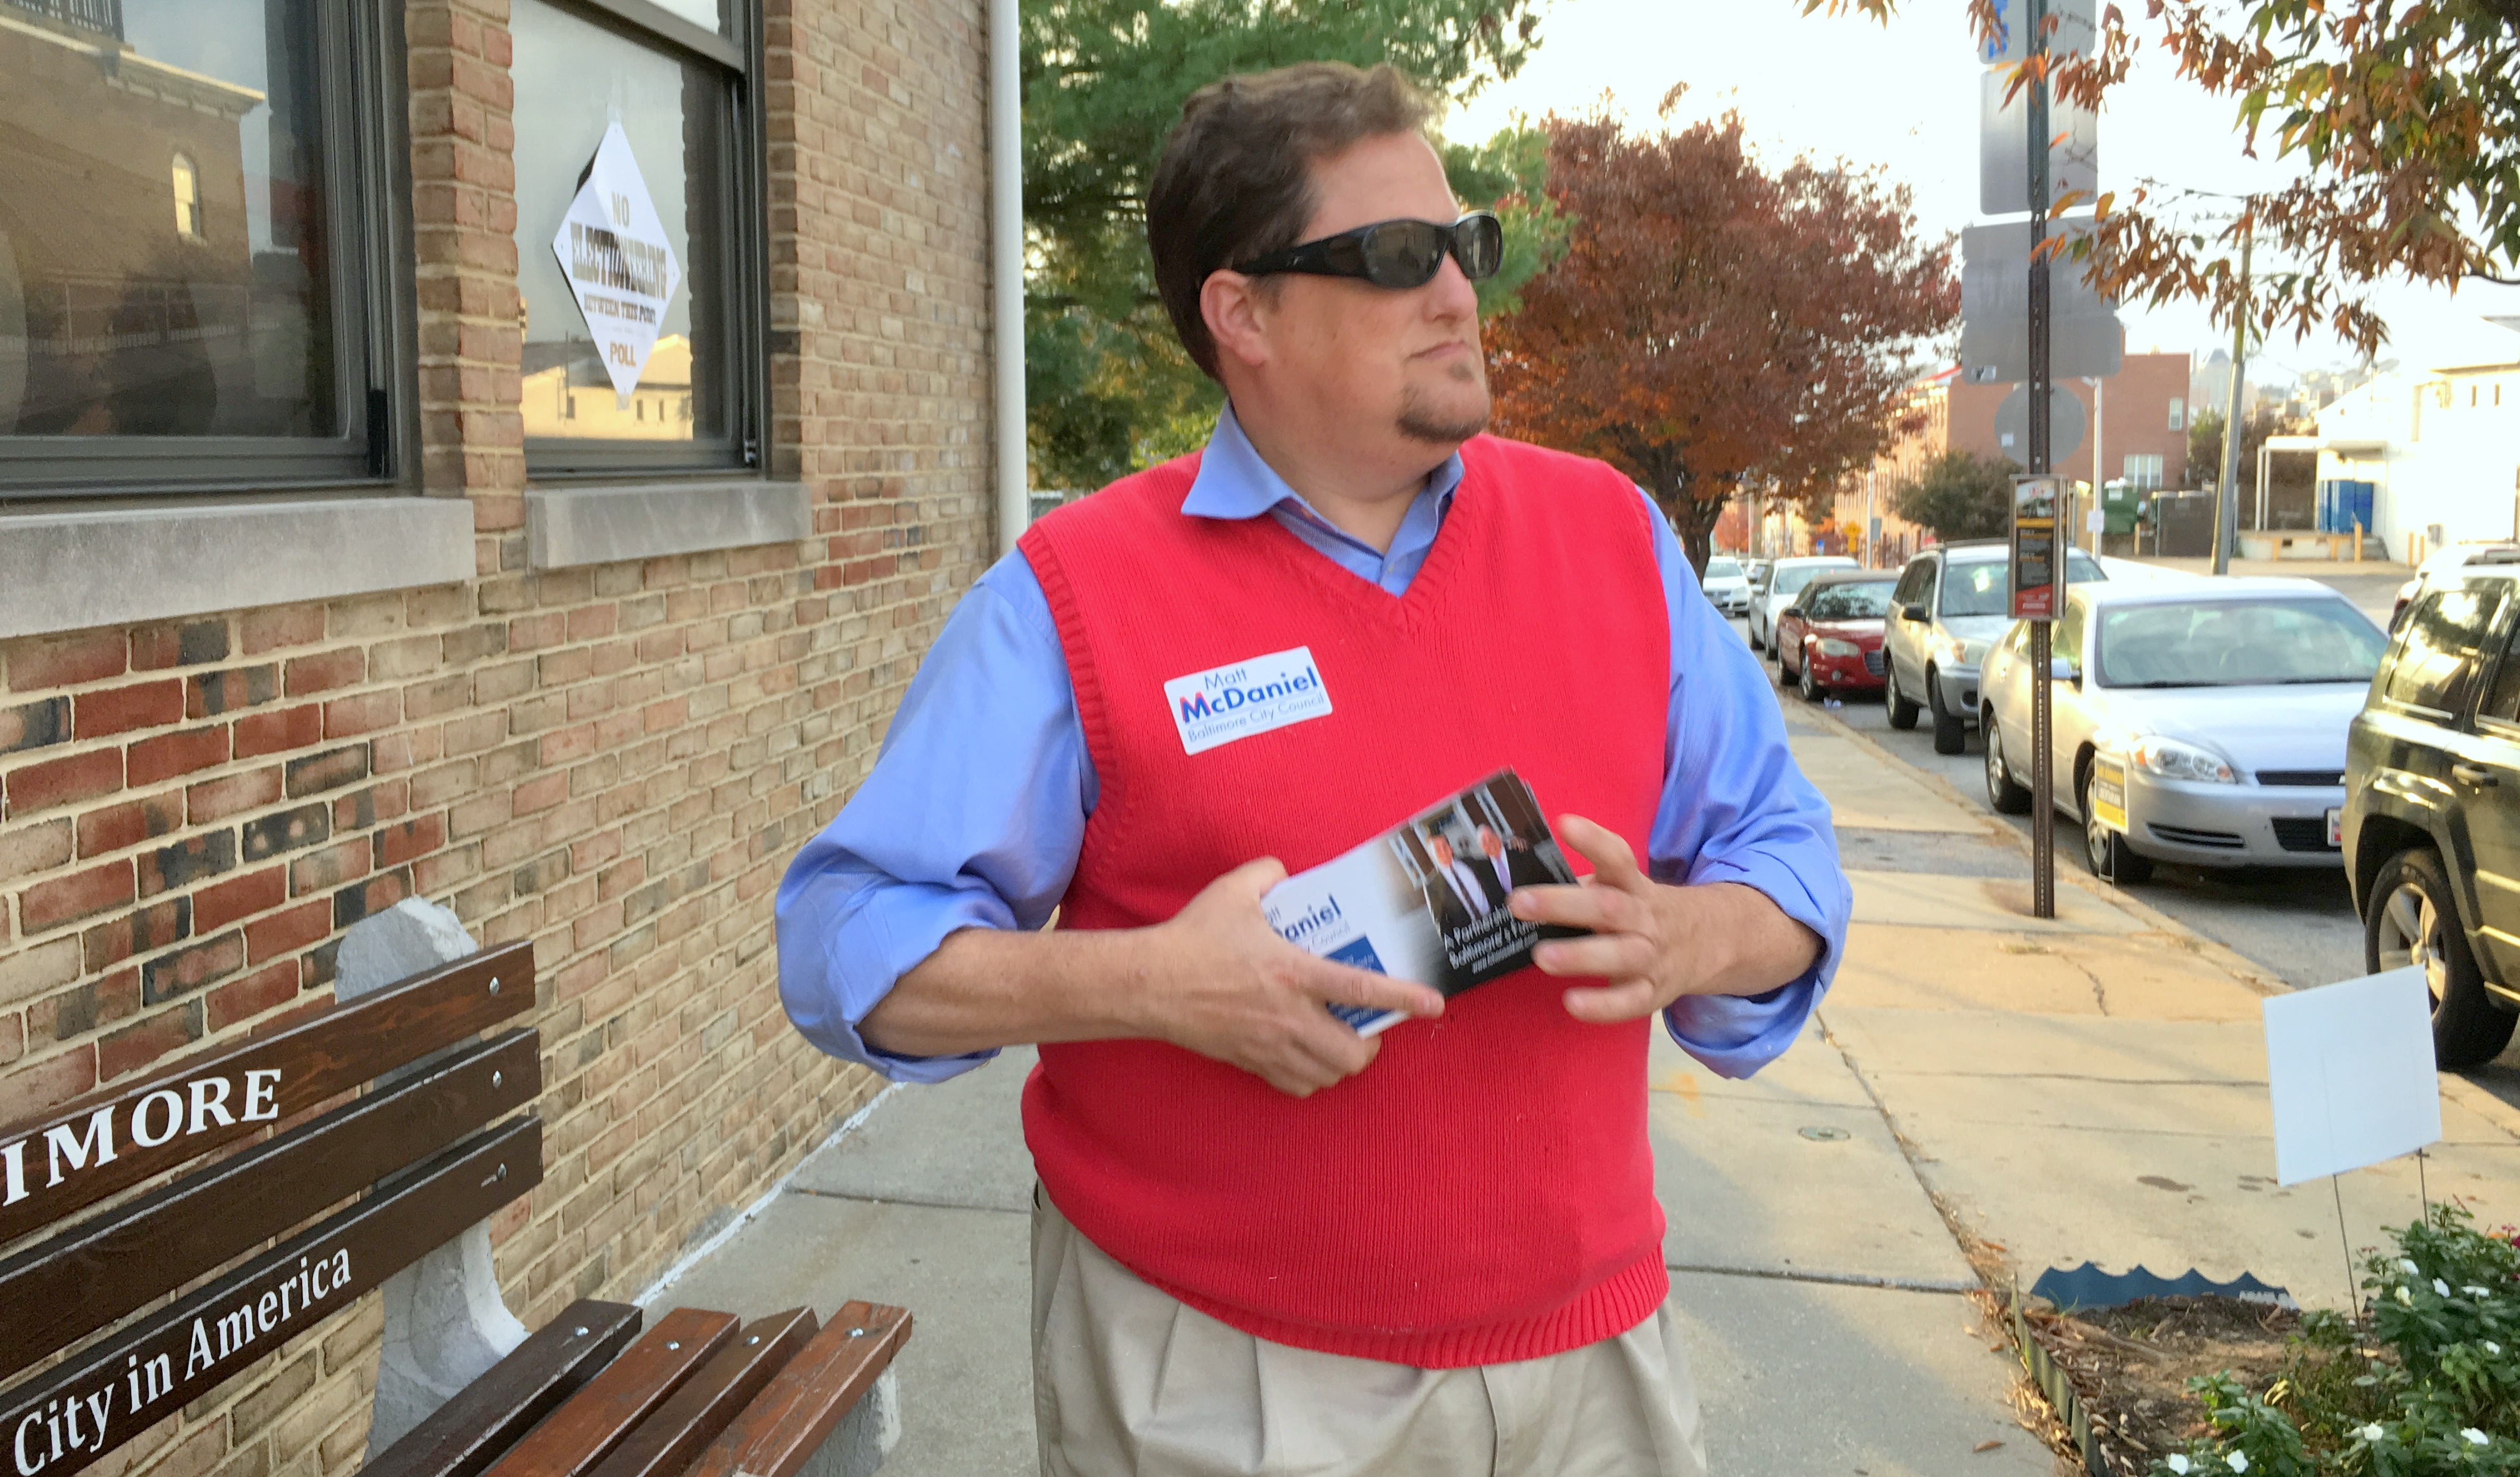 George Faber, of Baltimore County, hands out literature for Republican City Council candidate Matt McDaniel outside a Southeast Baltimore polling place. (Fern Shen)